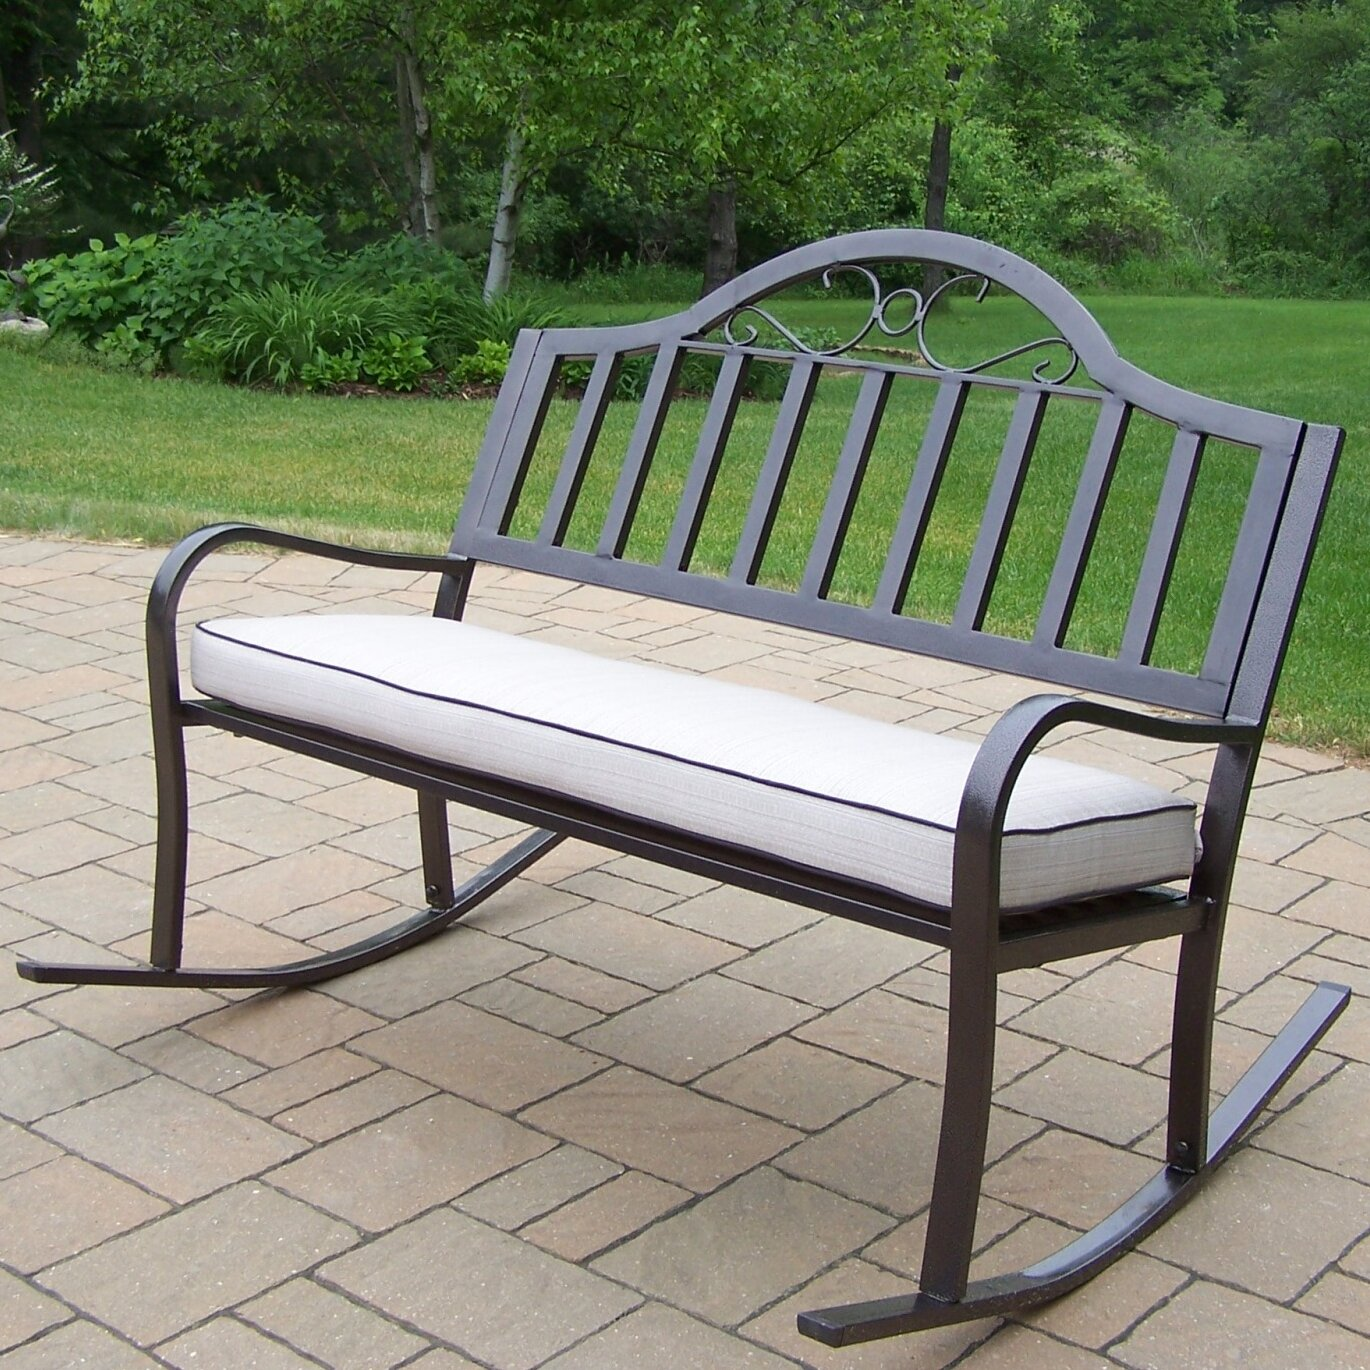 Rocking Garden Bench Customer Reviews For Tom Chambers Fsc Wooden Rocking Garden Bench